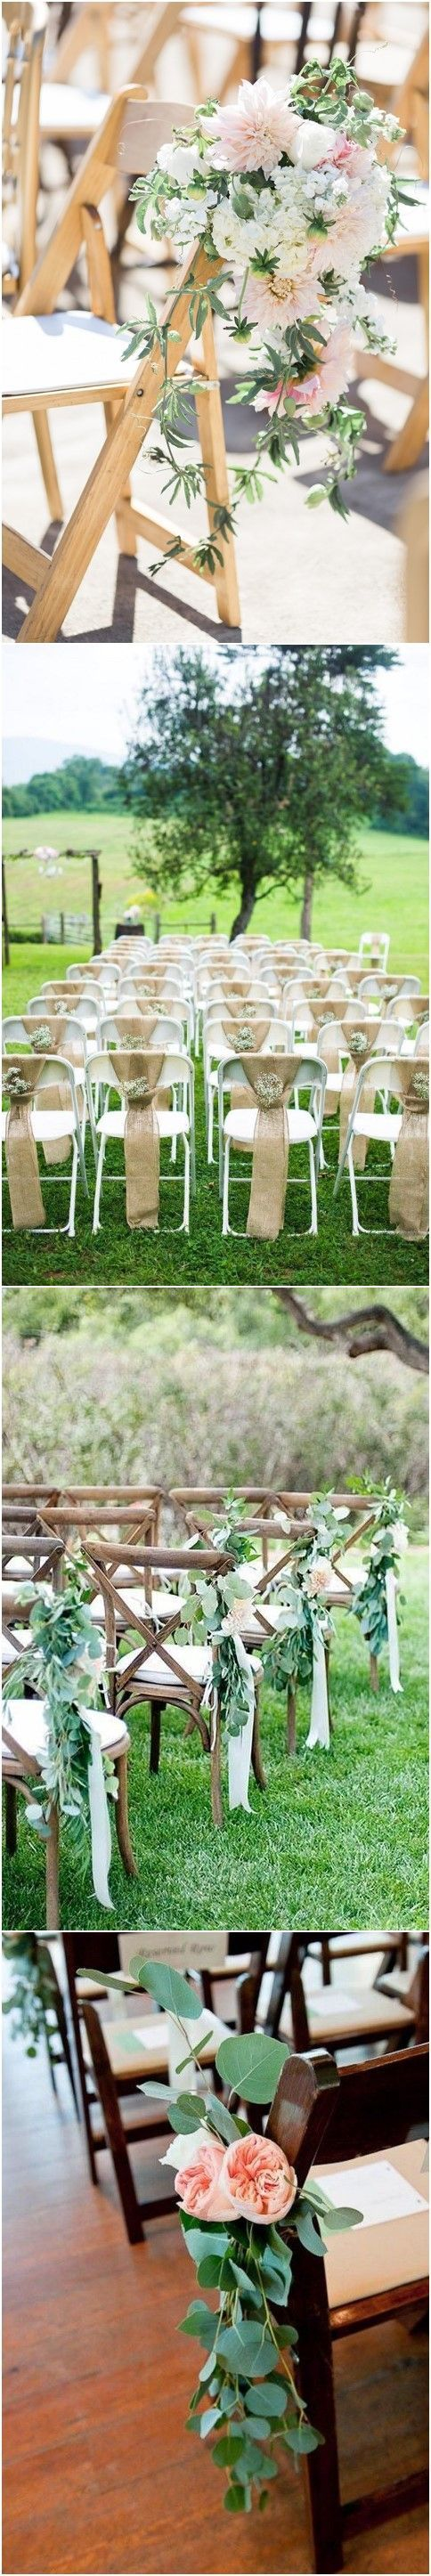 Wedding decorations at church january 2019  Musthave Wedding Chair Decorations for Ceremony  Wedding Ideas